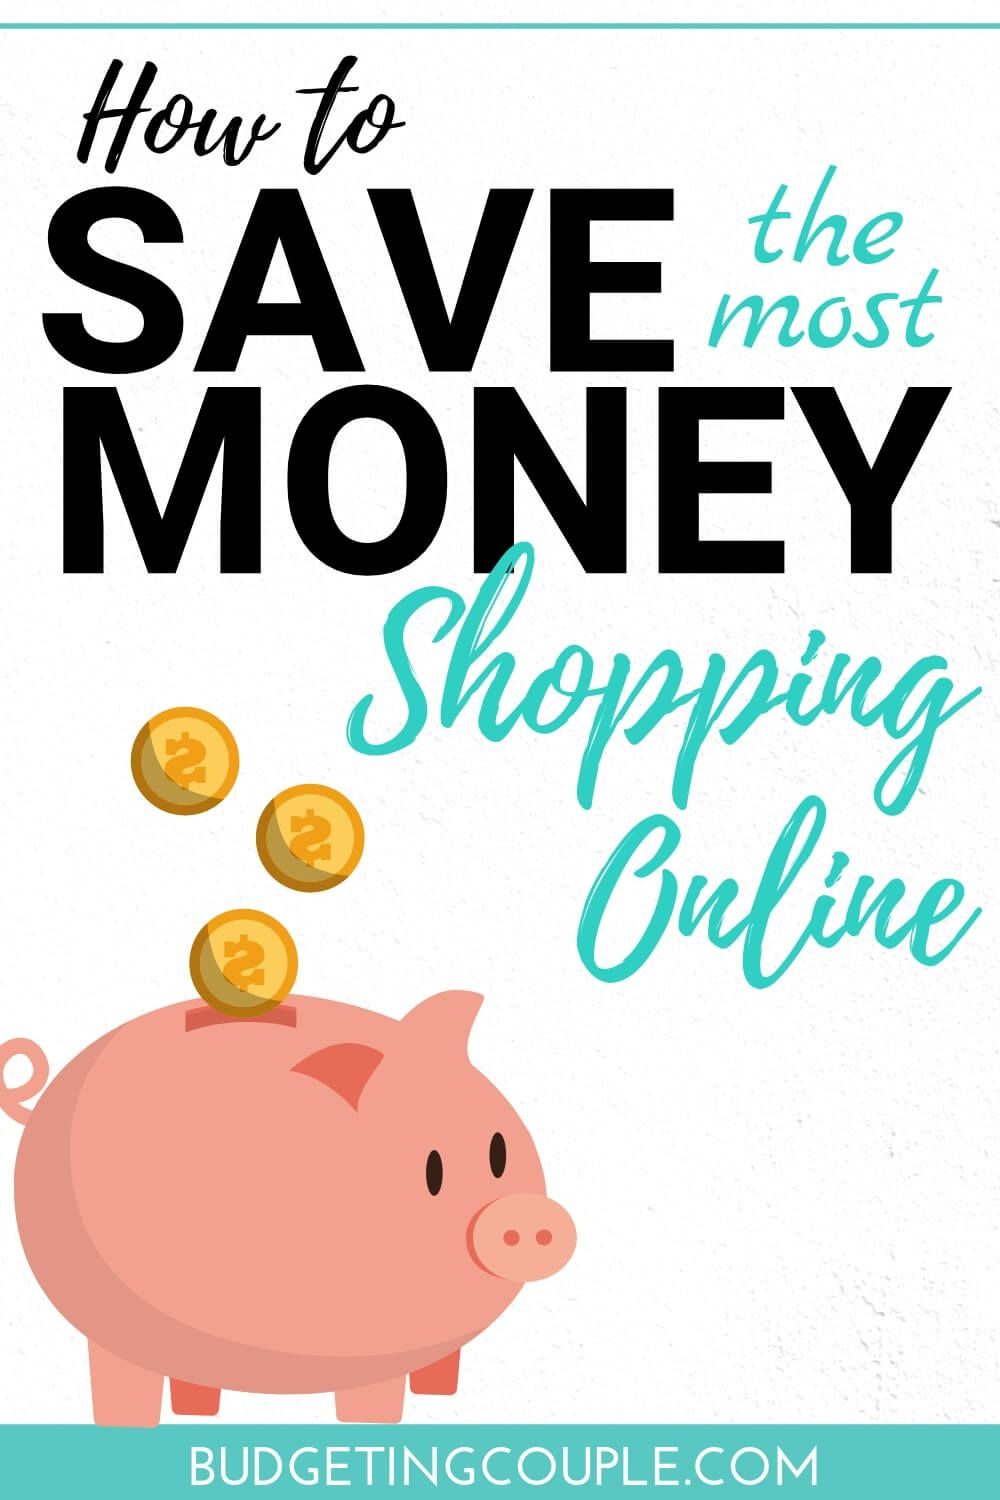 How To Save (the most) Money Shopping Online #startsavingmoney